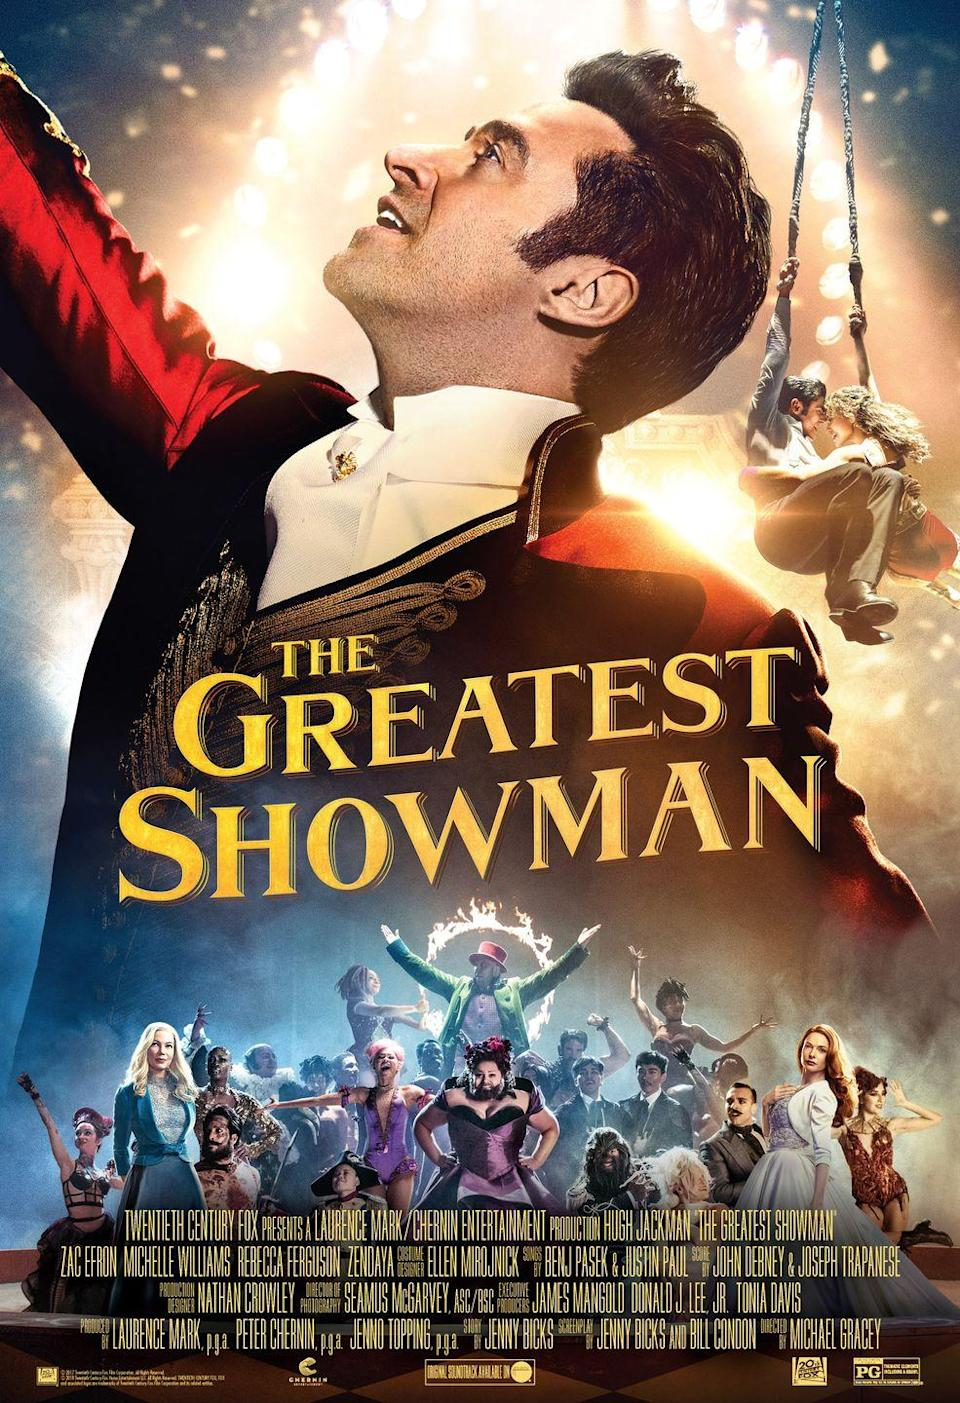 "<p>The story of how P.T. Barnum got his start in the circus business is told through some spectacular song and dance numbers starring Hugh Jackman, Zendaya, Zac Efron, and more. You'll run to give the soundtrack another listen within minutes of the movie ending.</p><p><a class=""link rapid-noclick-resp"" href=""https://www.amazon.com/Greatest-Showman-Hugh-Jackman/dp/B078HT6H7K/ref=sr_1_1?tag=syn-yahoo-20&ascsubtag=%5Bartid%7C10063.g.34344525%5Bsrc%7Cyahoo-us"" rel=""nofollow noopener"" target=""_blank"" data-ylk=""slk:WATCH NOW"">WATCH NOW</a></p>"